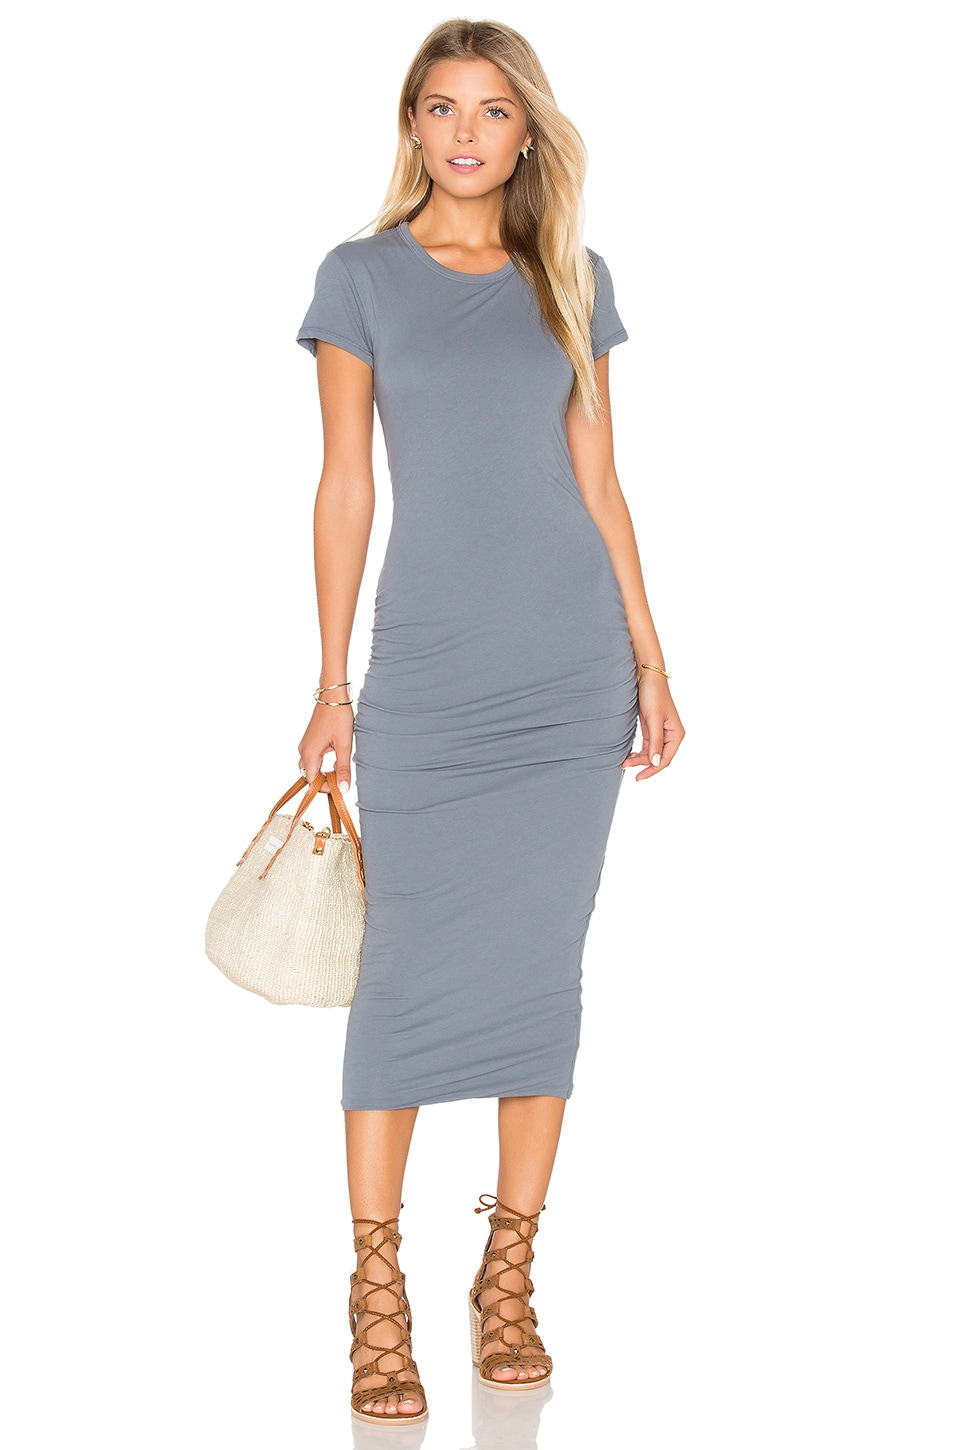 James Perse Classic Skinny Dress in North